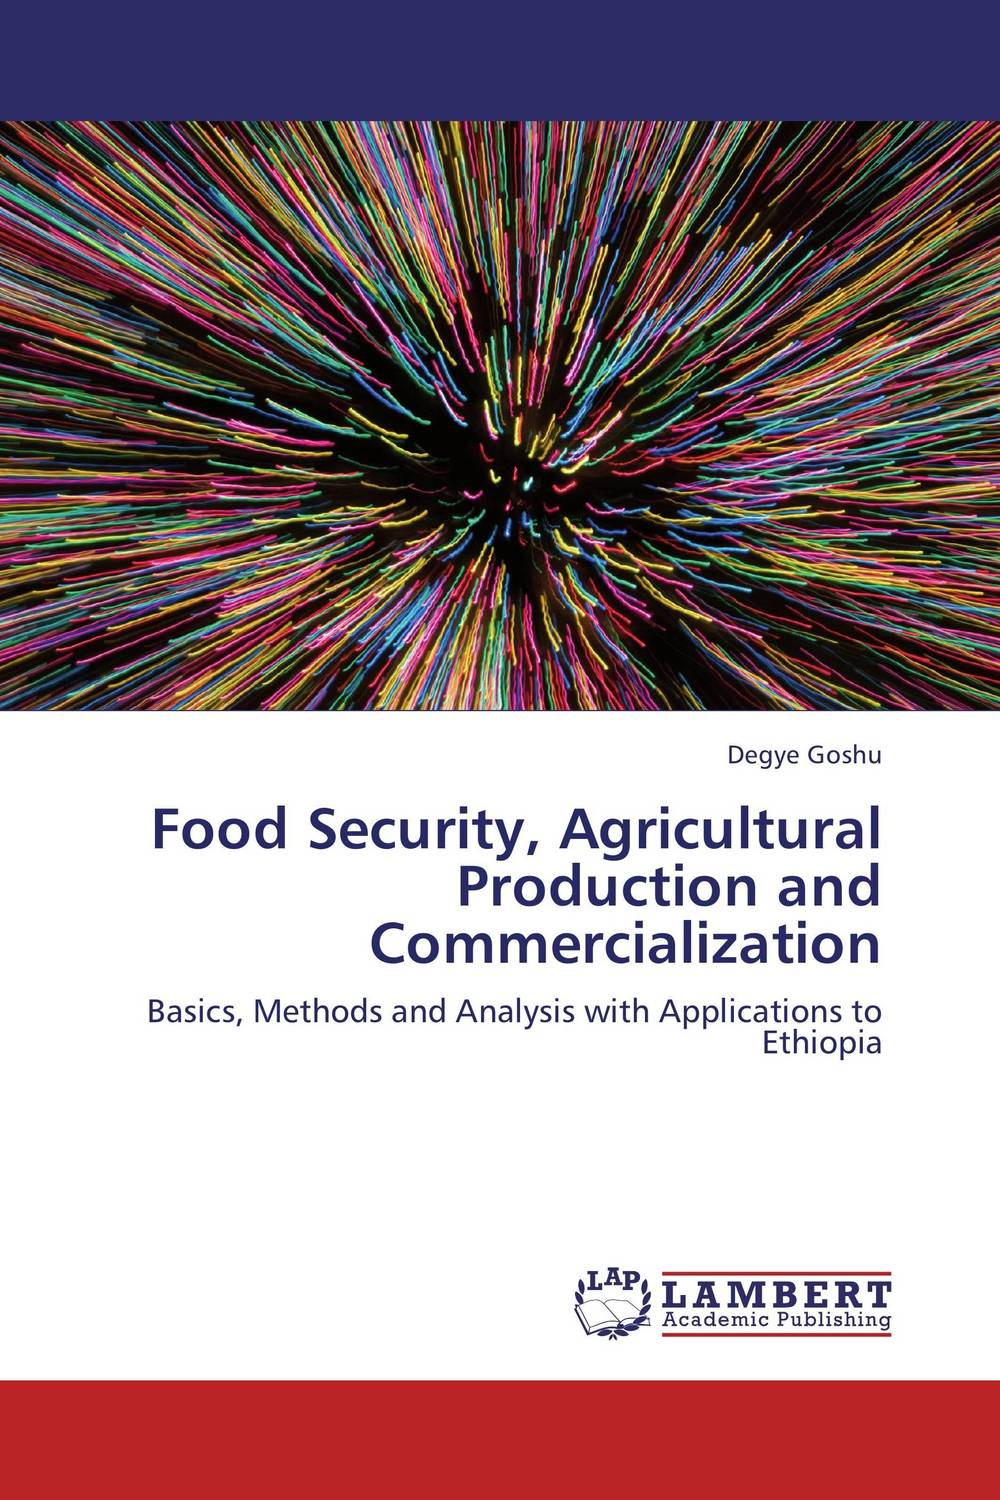 Food Security, Agricultural Production and Commercialization cold storage accessibility and agricultural production by smallholders